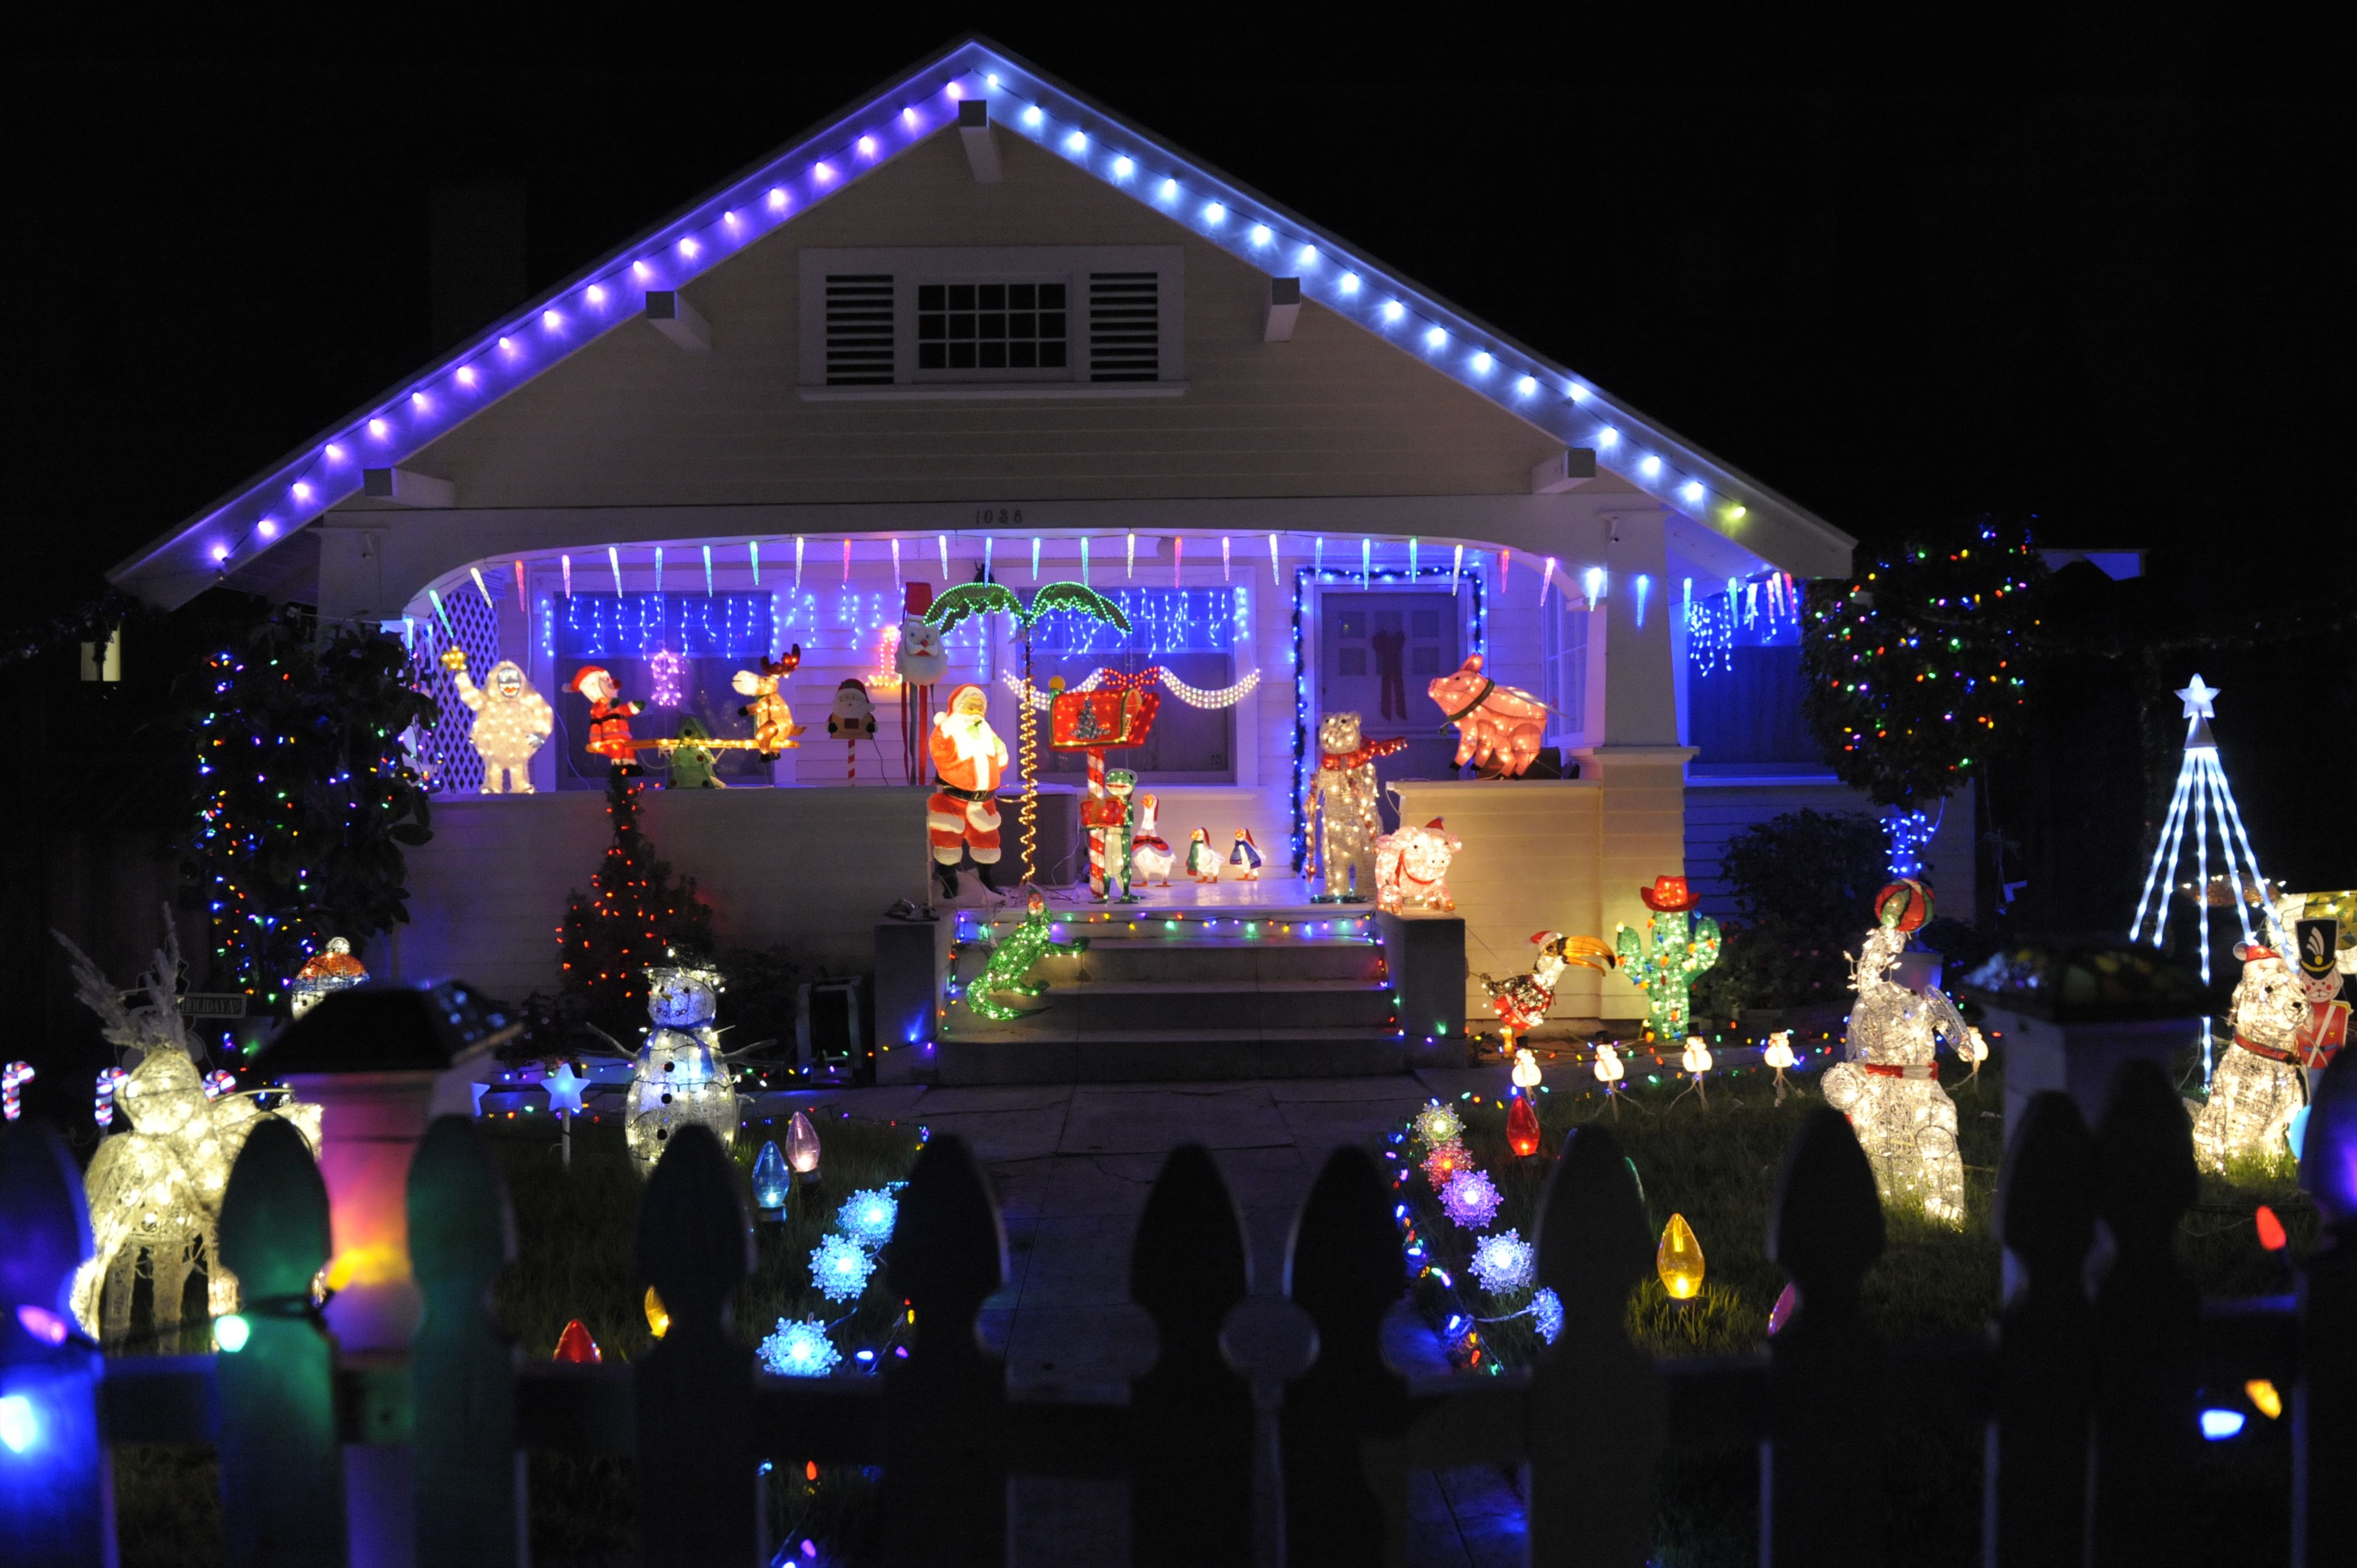 blue lights along the front gable and horizontally above the front porch create a pediment on a modest home